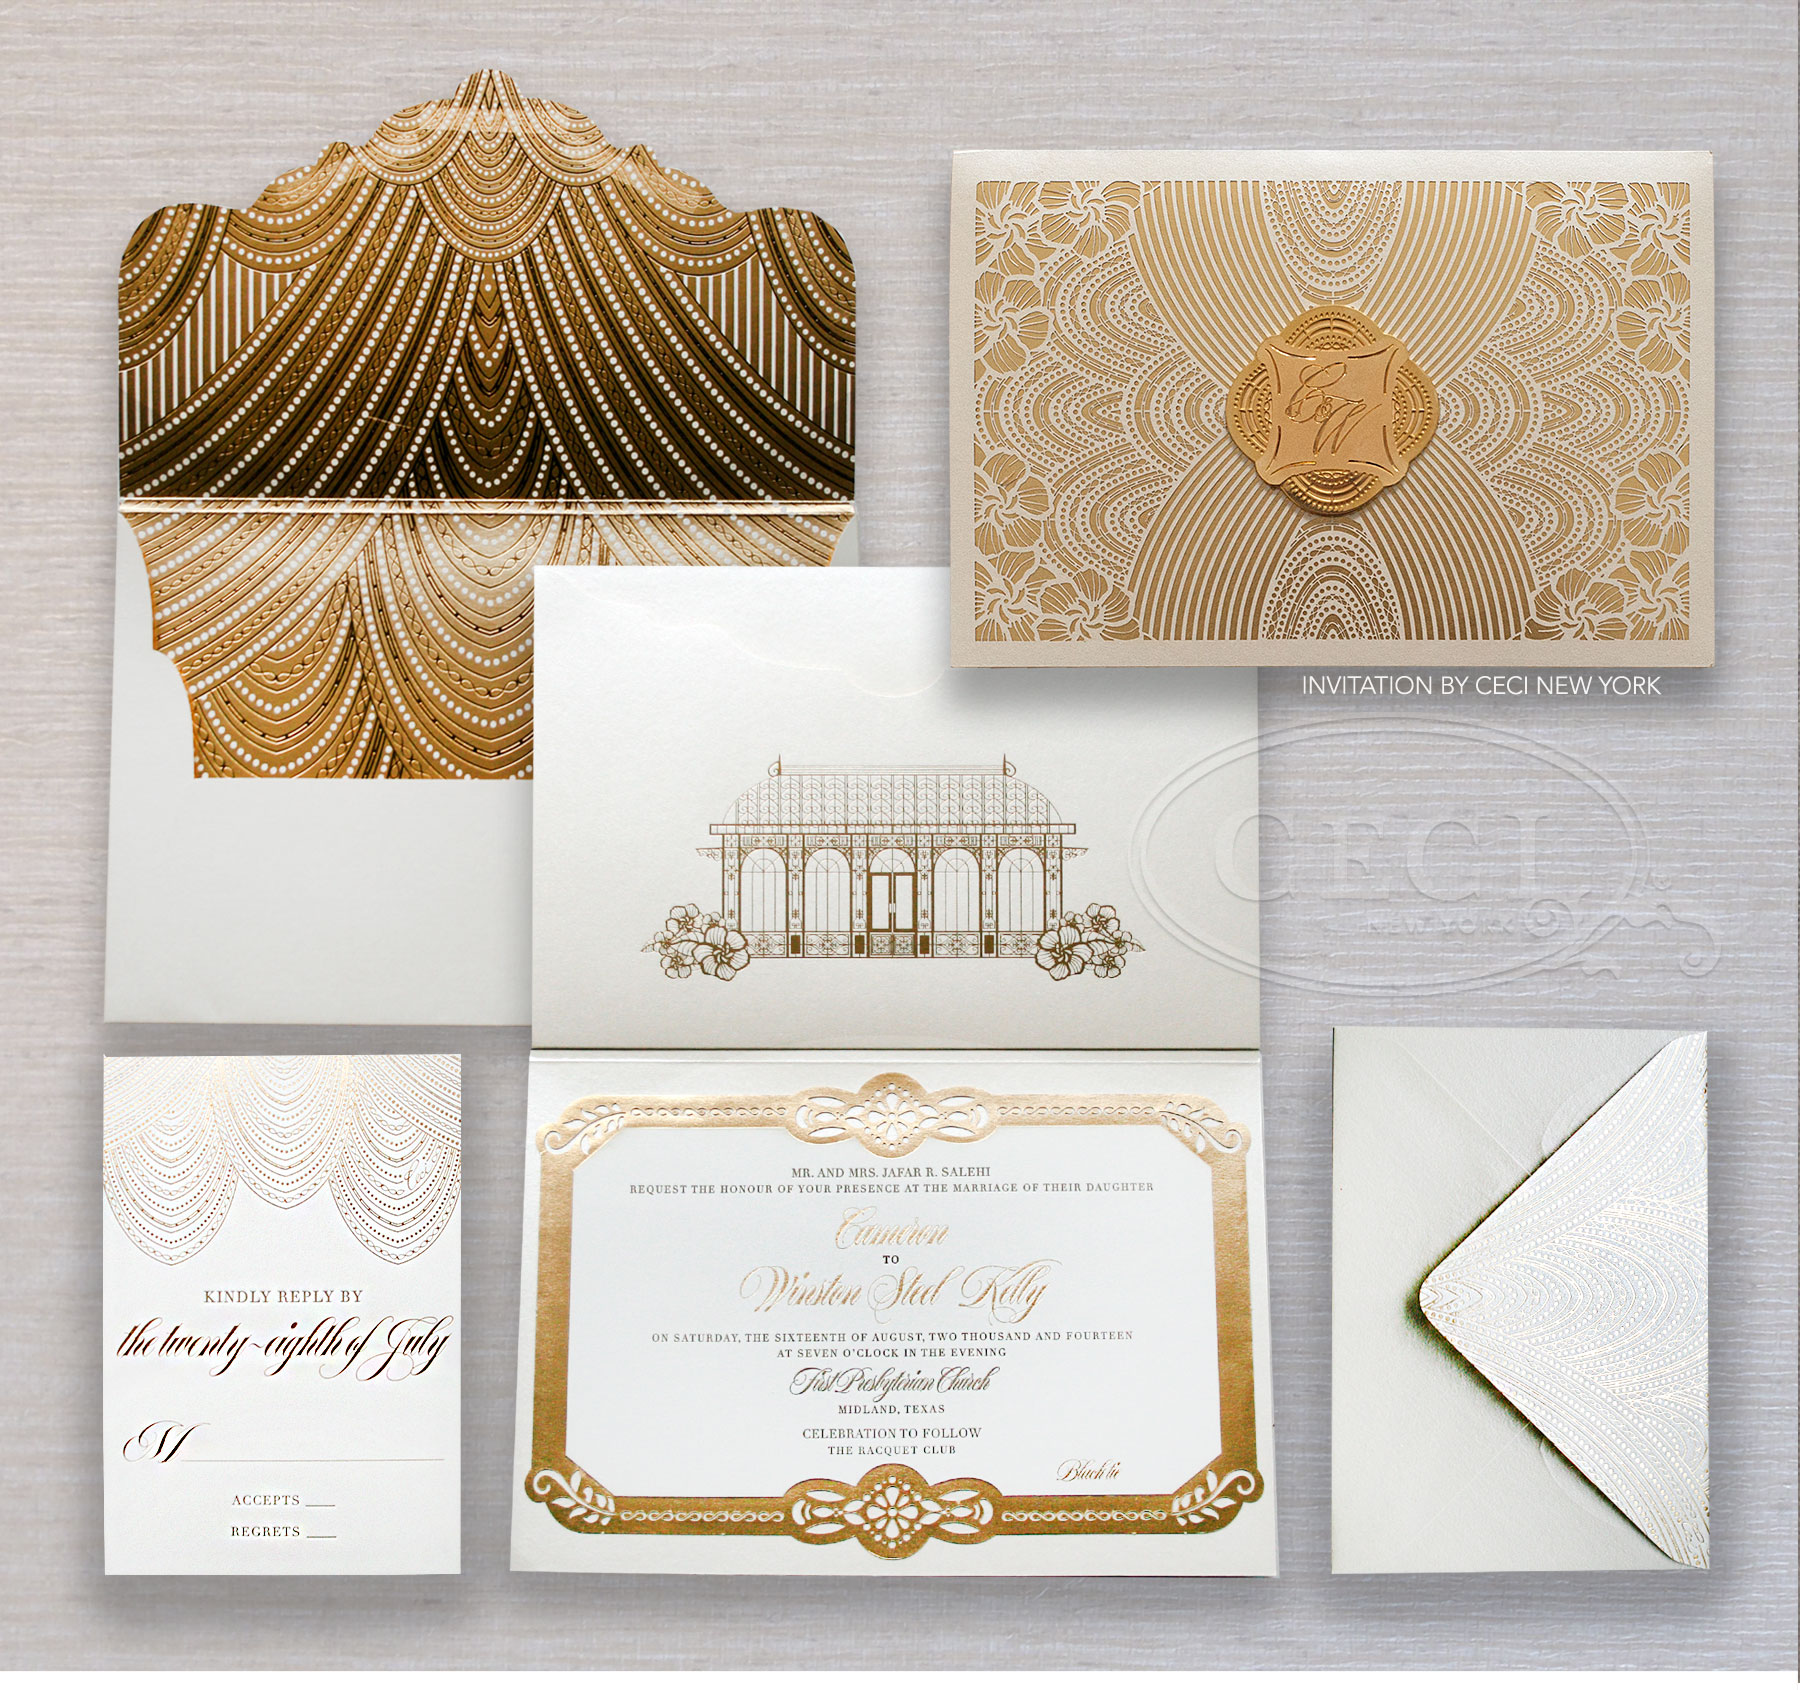 Luxury Wedding Invitations by Ceci New York - Our Muse - custom wedding invitations, luxury wedding invitations, couture, racquet club, texas, glamour, gold, ceci new york - Be inspired by Cameron and Winston's glamorous wedding in Texas. - custom wedding invitations, luxury wedding invitations, couture, racquet club, texas, glamour, gold, ceci new york